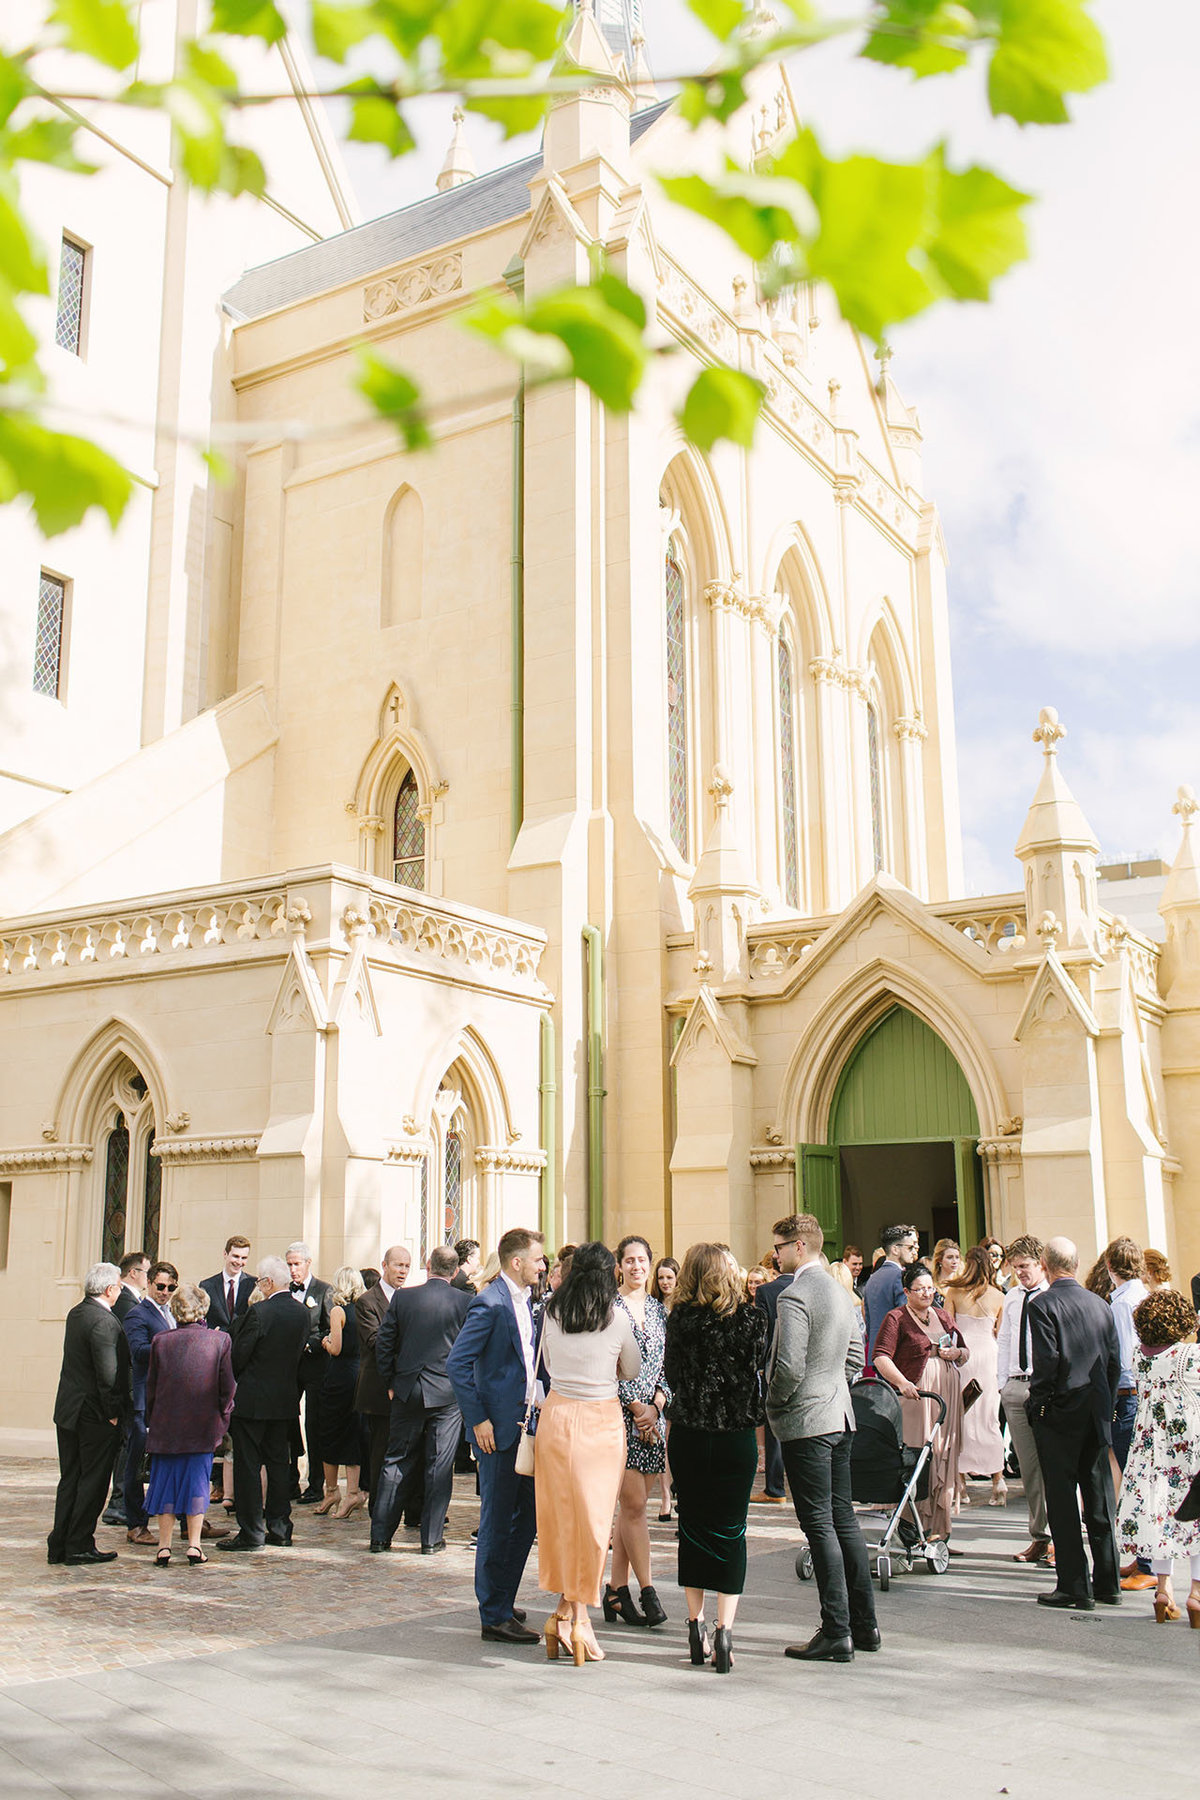 42-st-marys-cathedral-perth-wedding